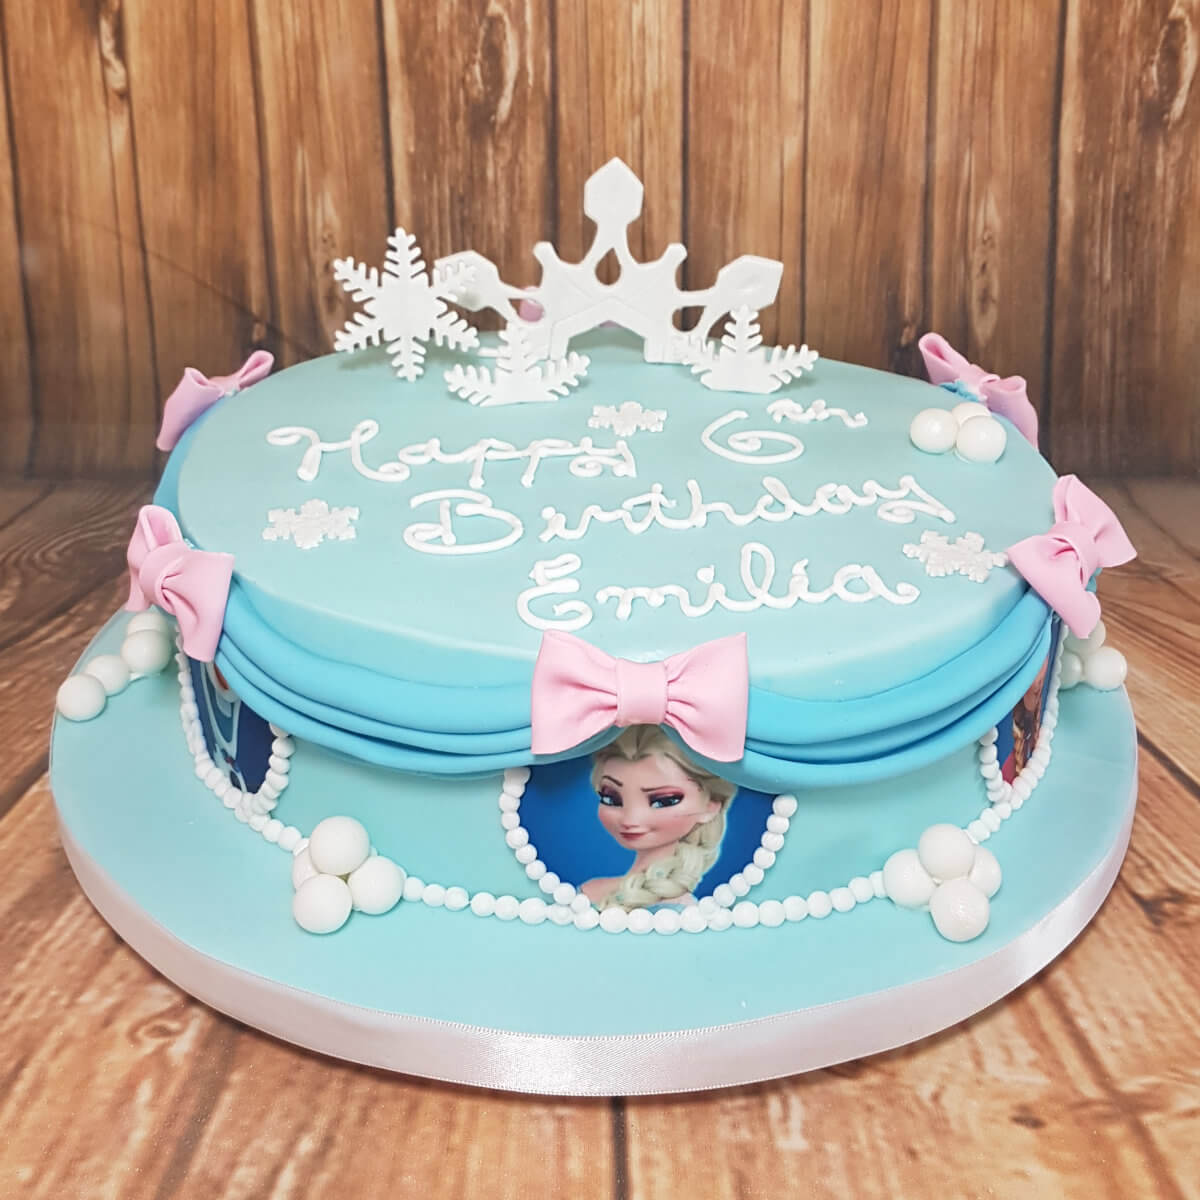 Frozen theme children's birthday cake - Tamworth